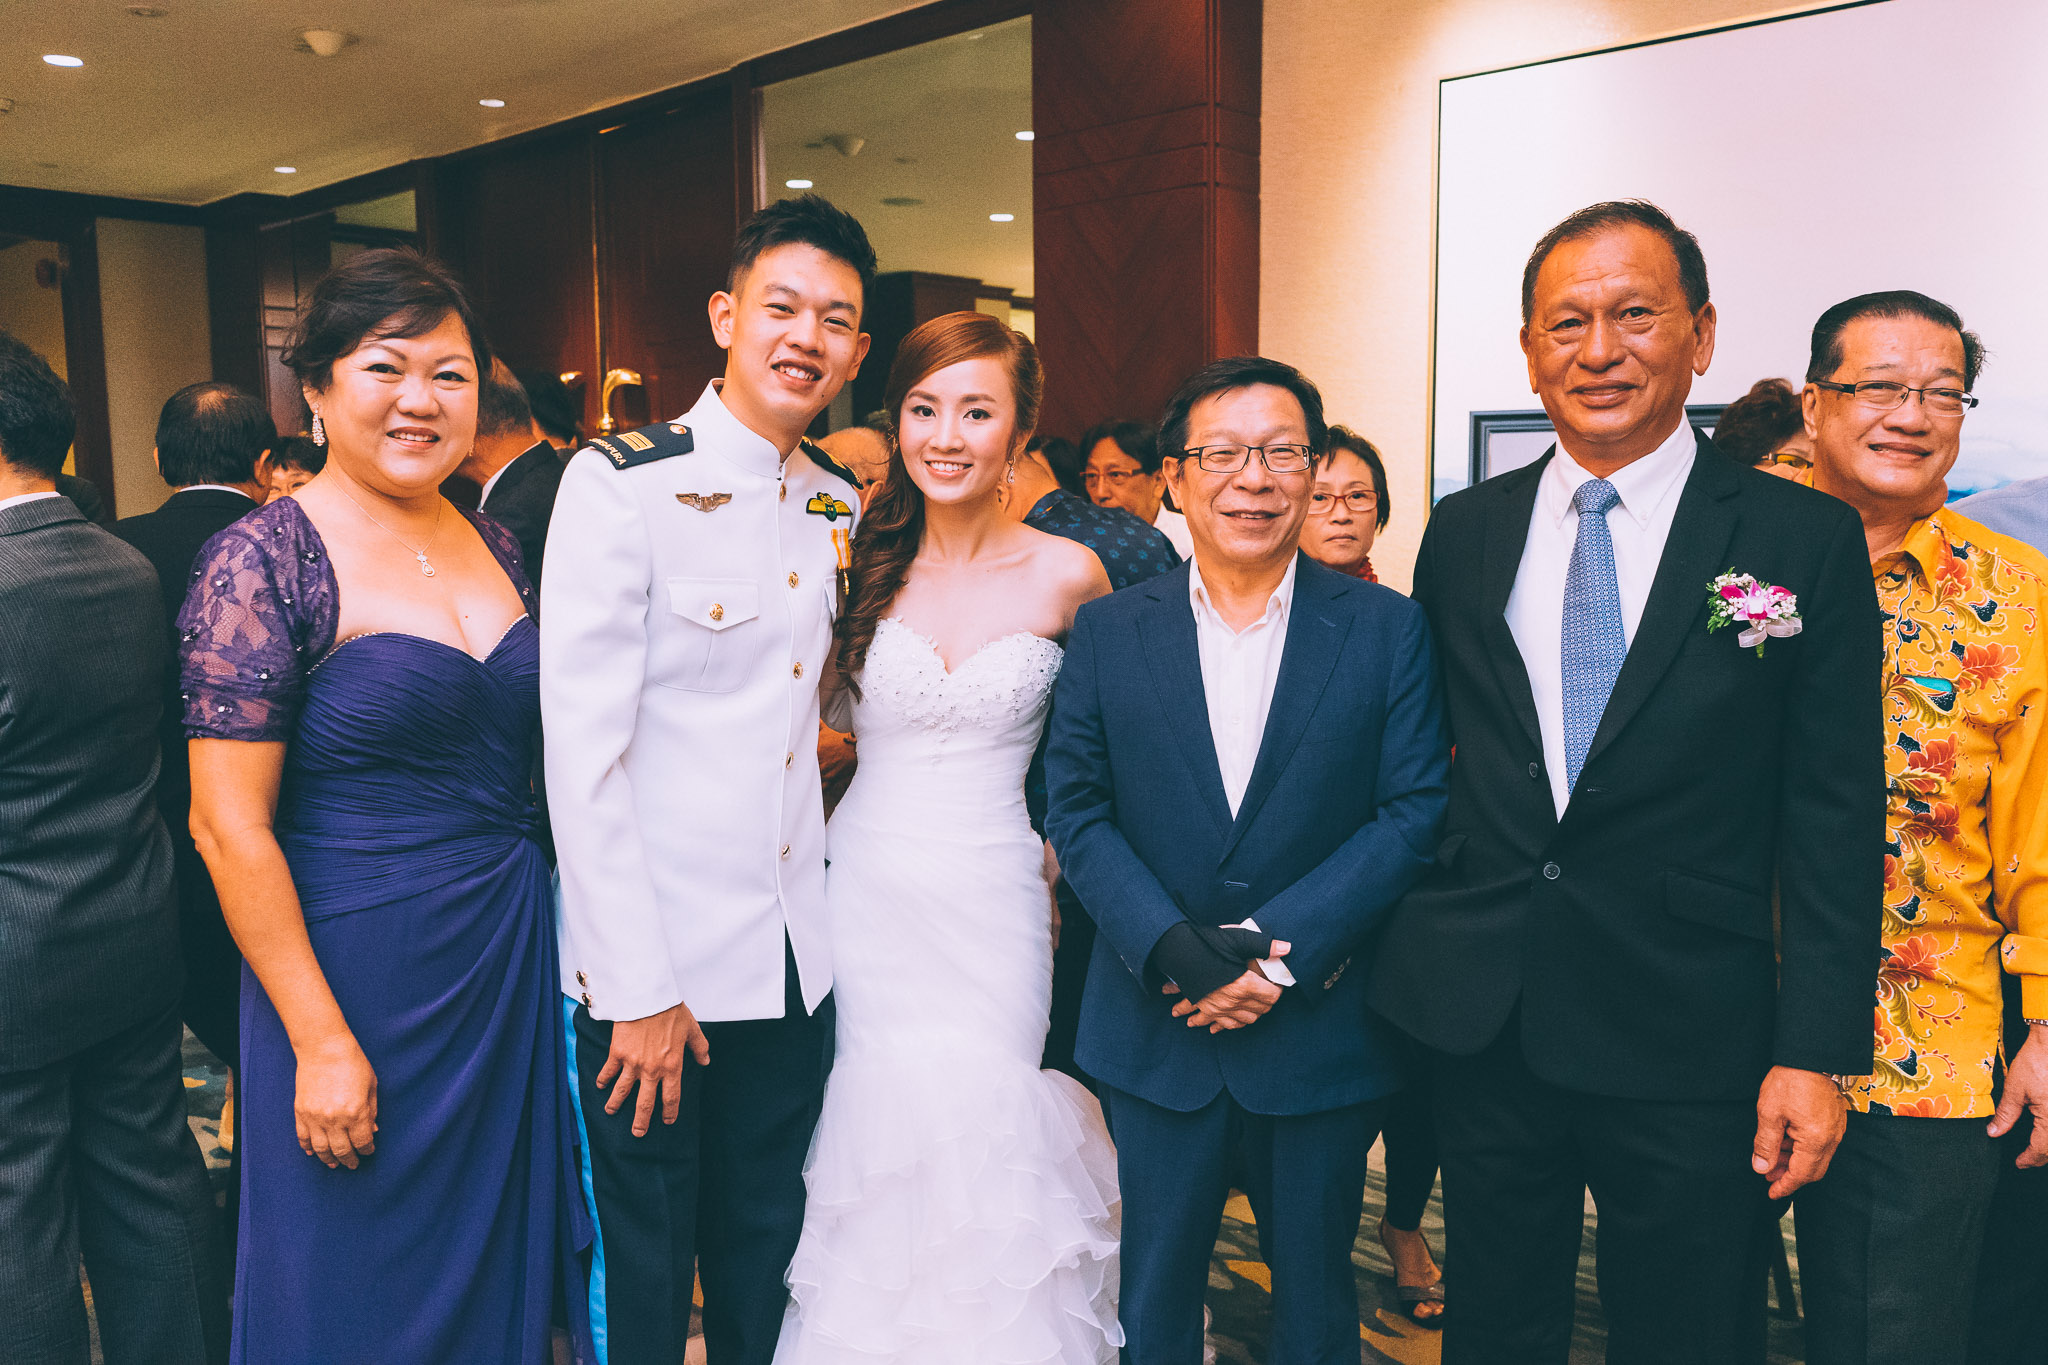 Singapore Wedding Photographer shangrila hotel  Aaron & Sherlyn 139.jpg